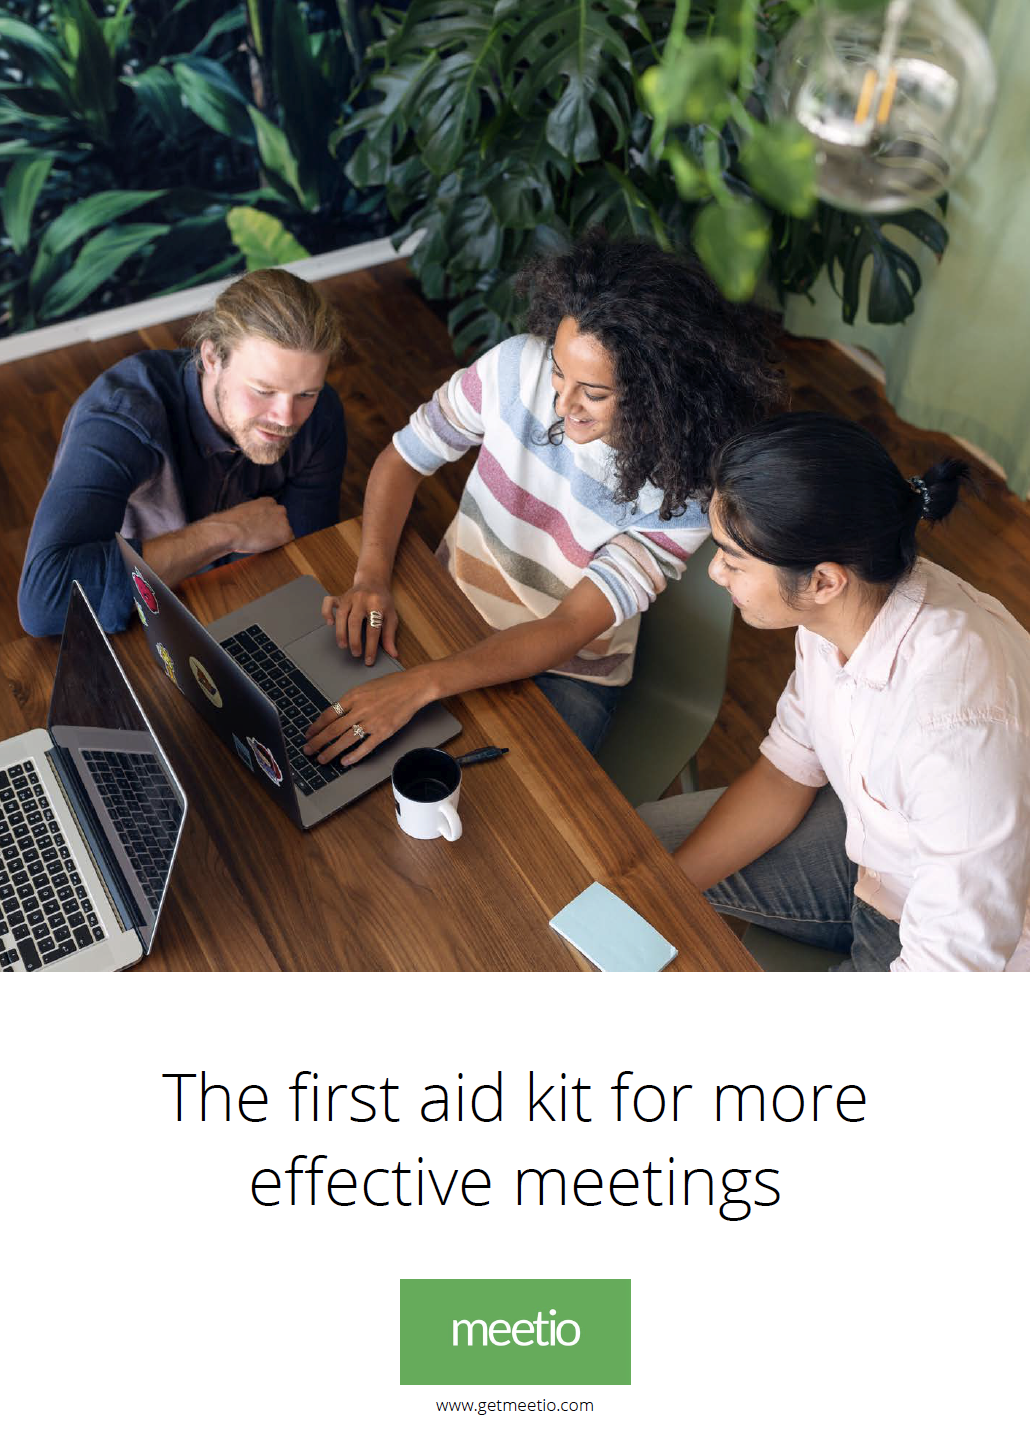 The first aid kit for more effective meetings